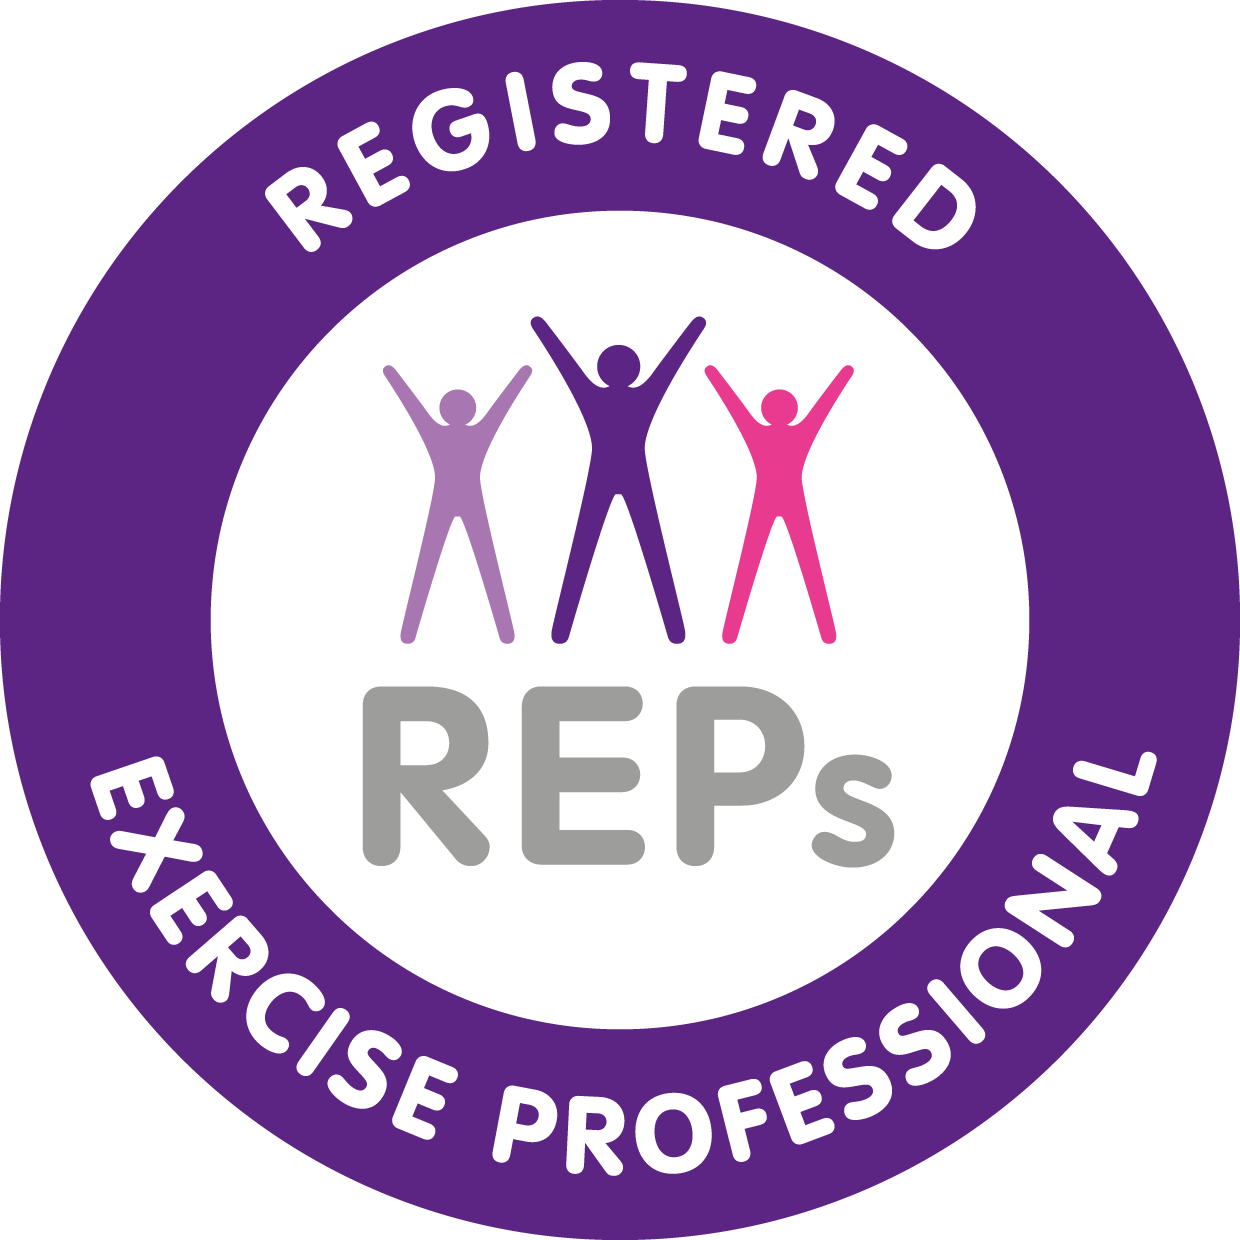 Register of professional trainers